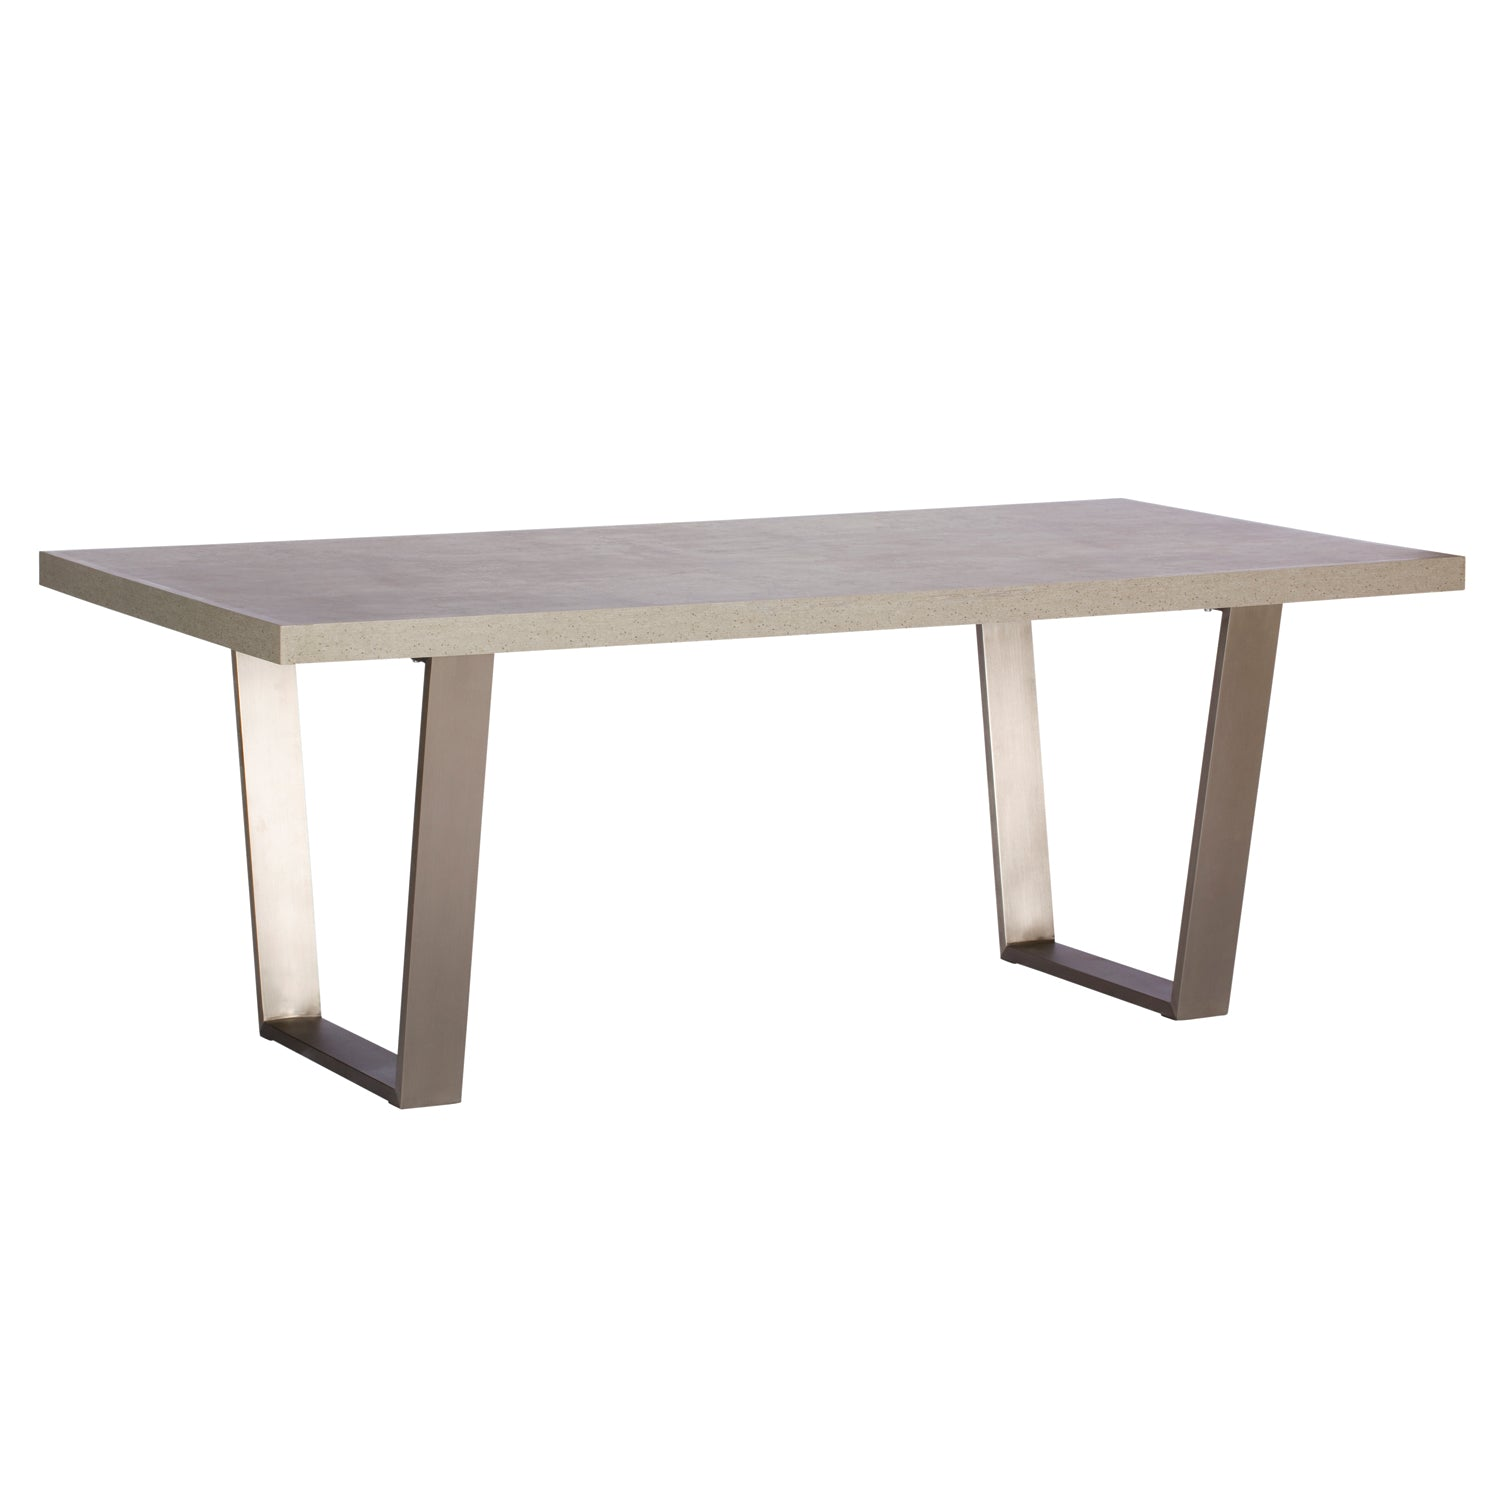 Morwell 200cm Dining Table